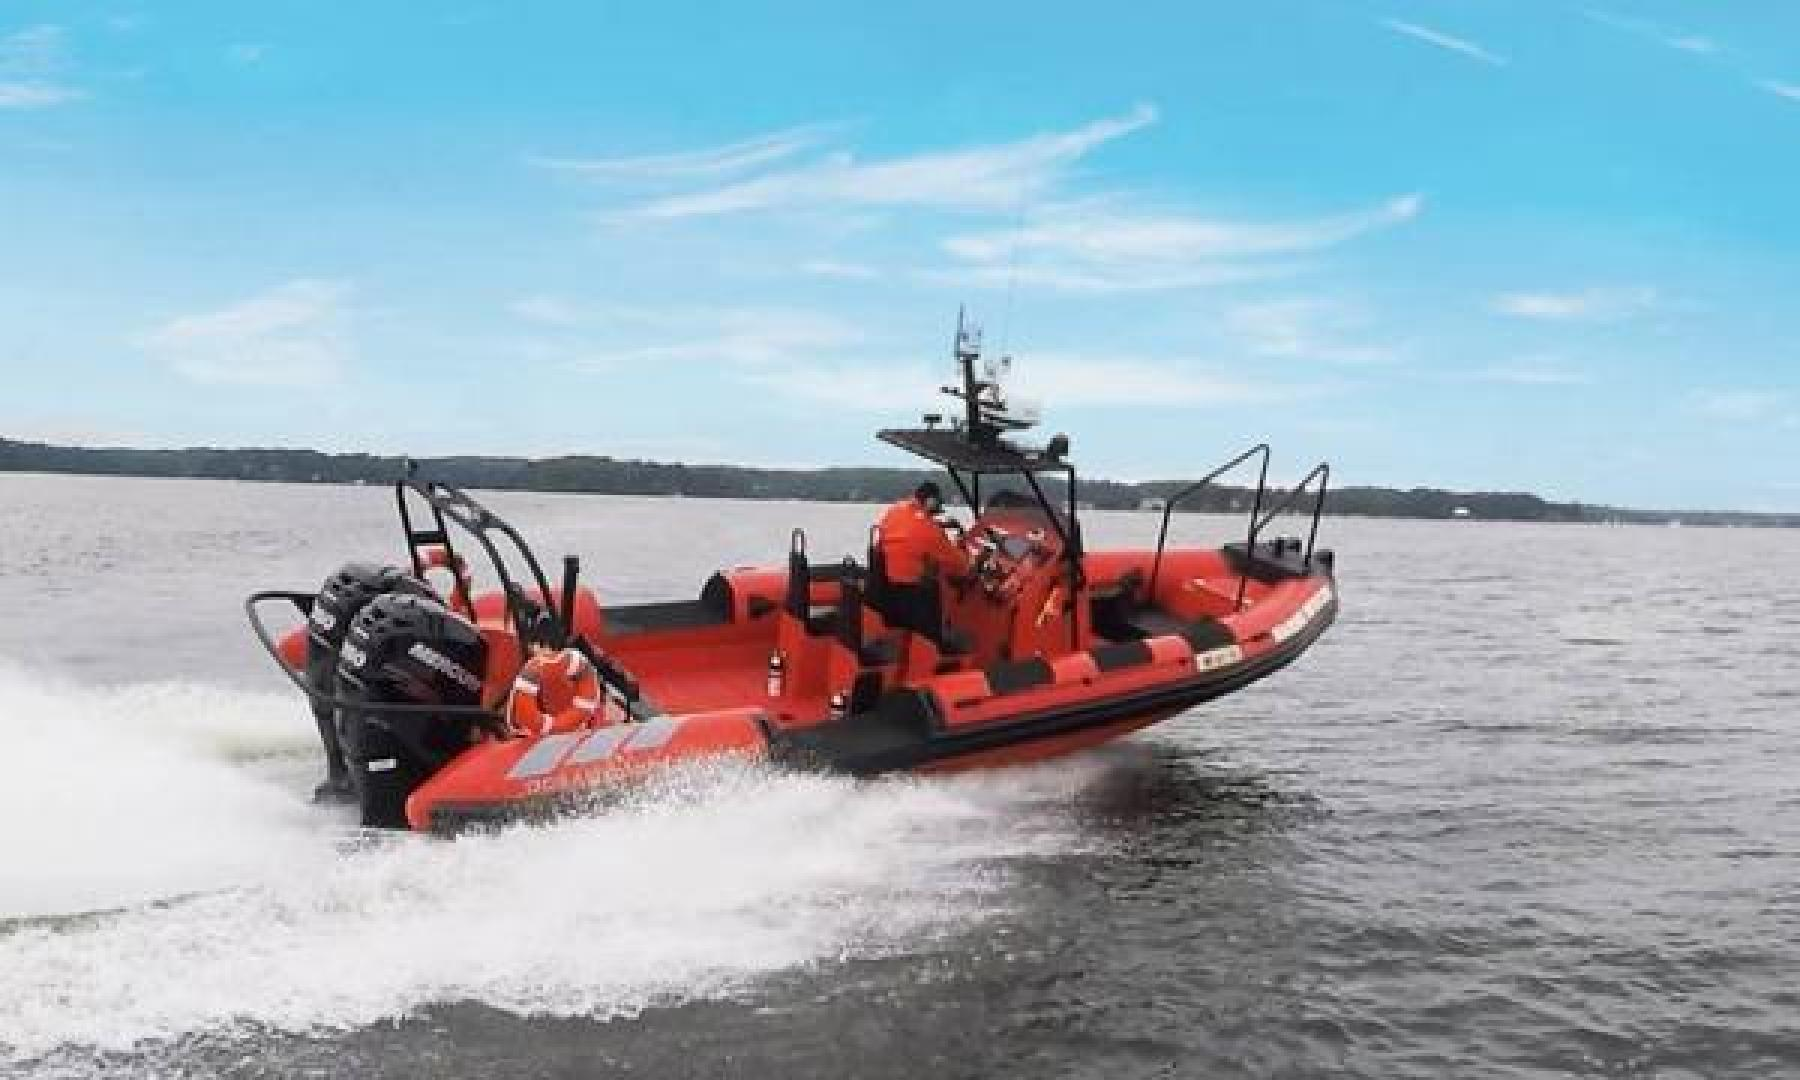 Ocean Craft Marine-9.5M RHIB Professional Search and Rescue 2021-Ocean Craft Marine 9.5M RHIB Professional Search and Rescue Fort Lauderdale-Florida-United States-1522801 | Thumbnail